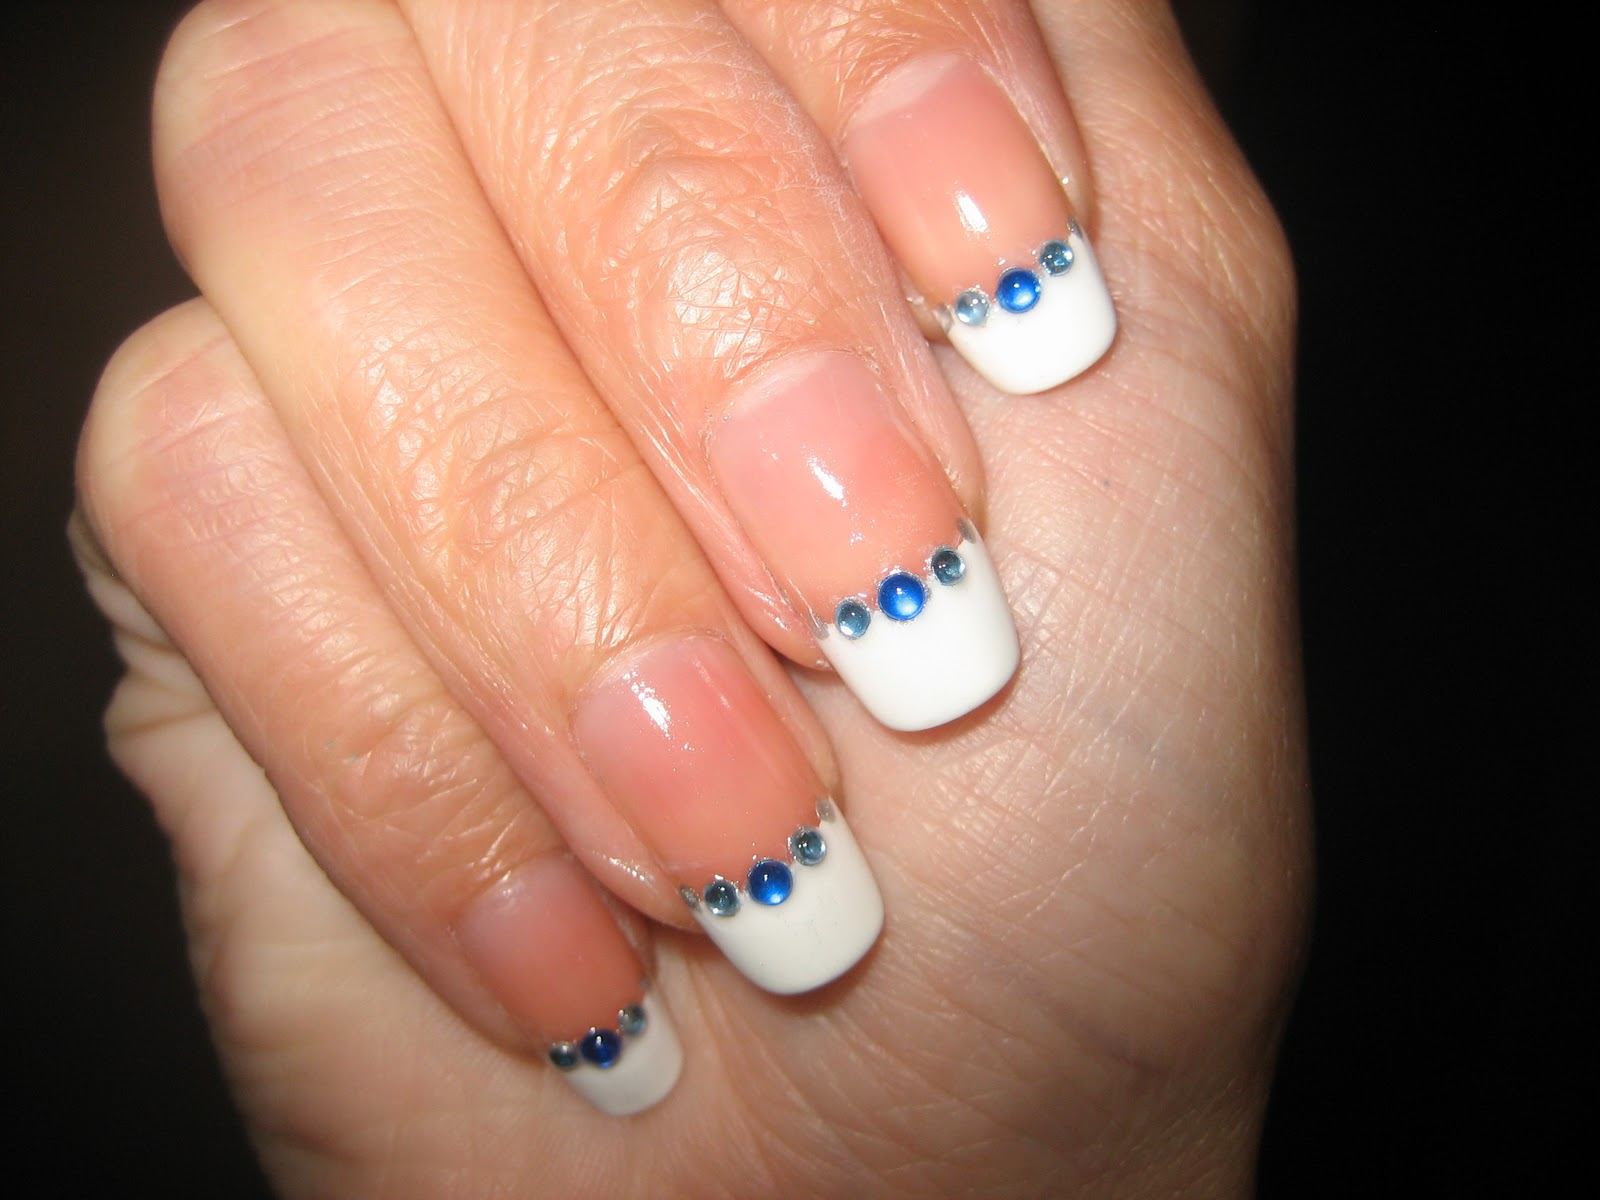 Awesome Nails By Nicole NOTD Rhinestone French Manicure